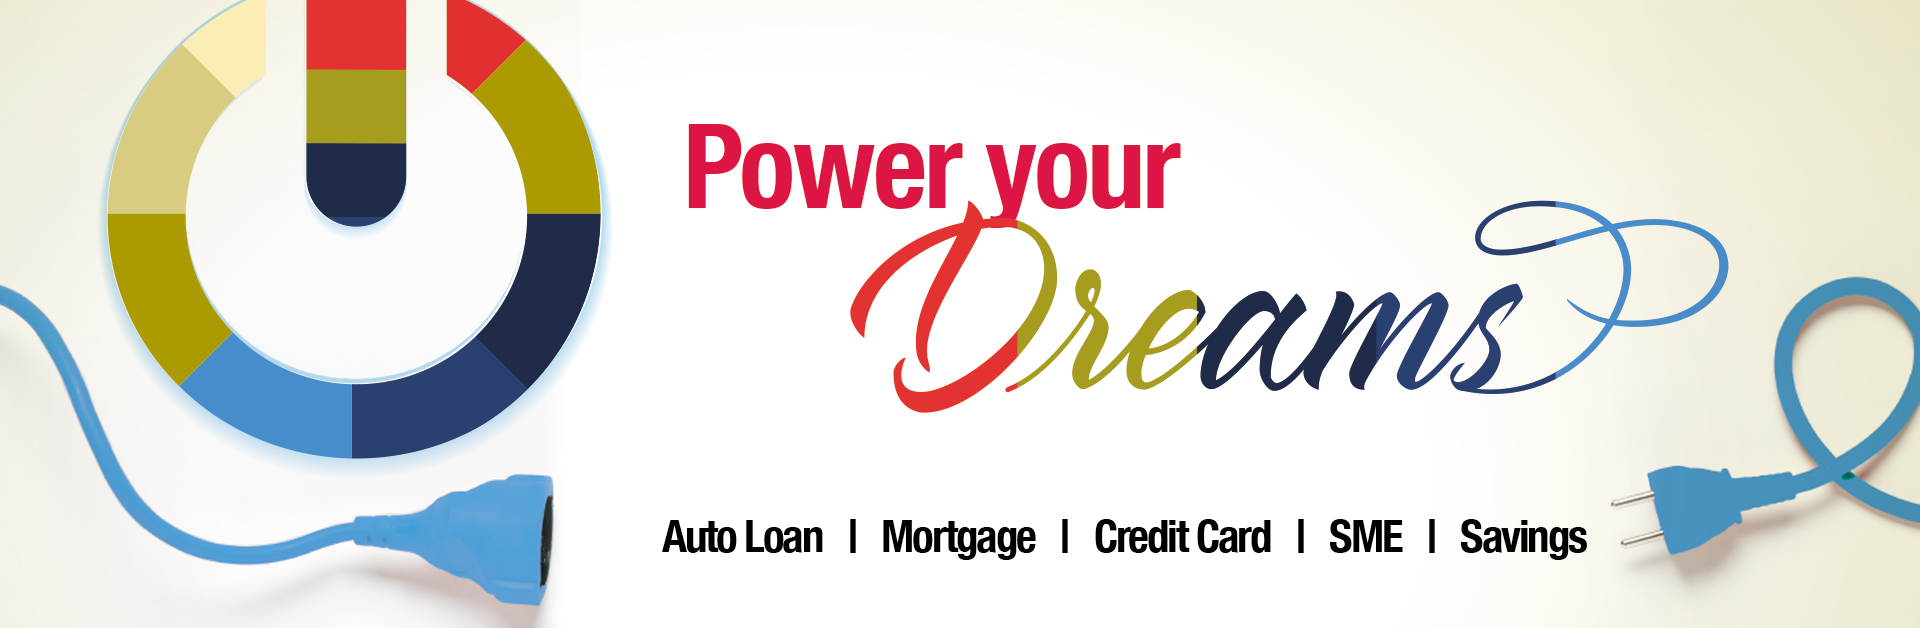 First Global Bank Power Your Dreams